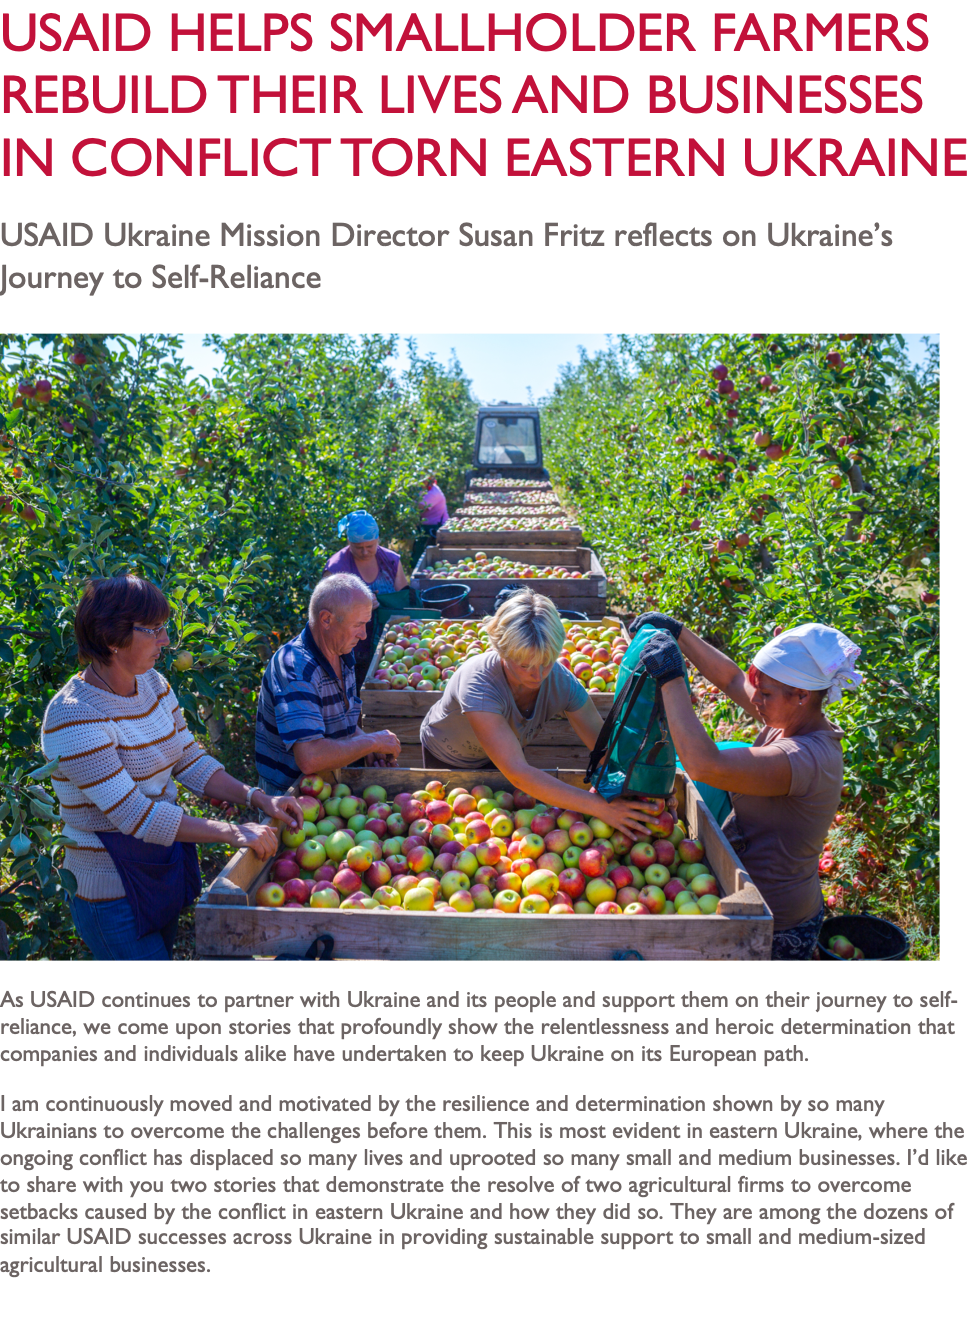 USAID Helps Smallholder Farmers Rebuild Their Lives and Businesses in Conflict Torn Eastern Ukraine